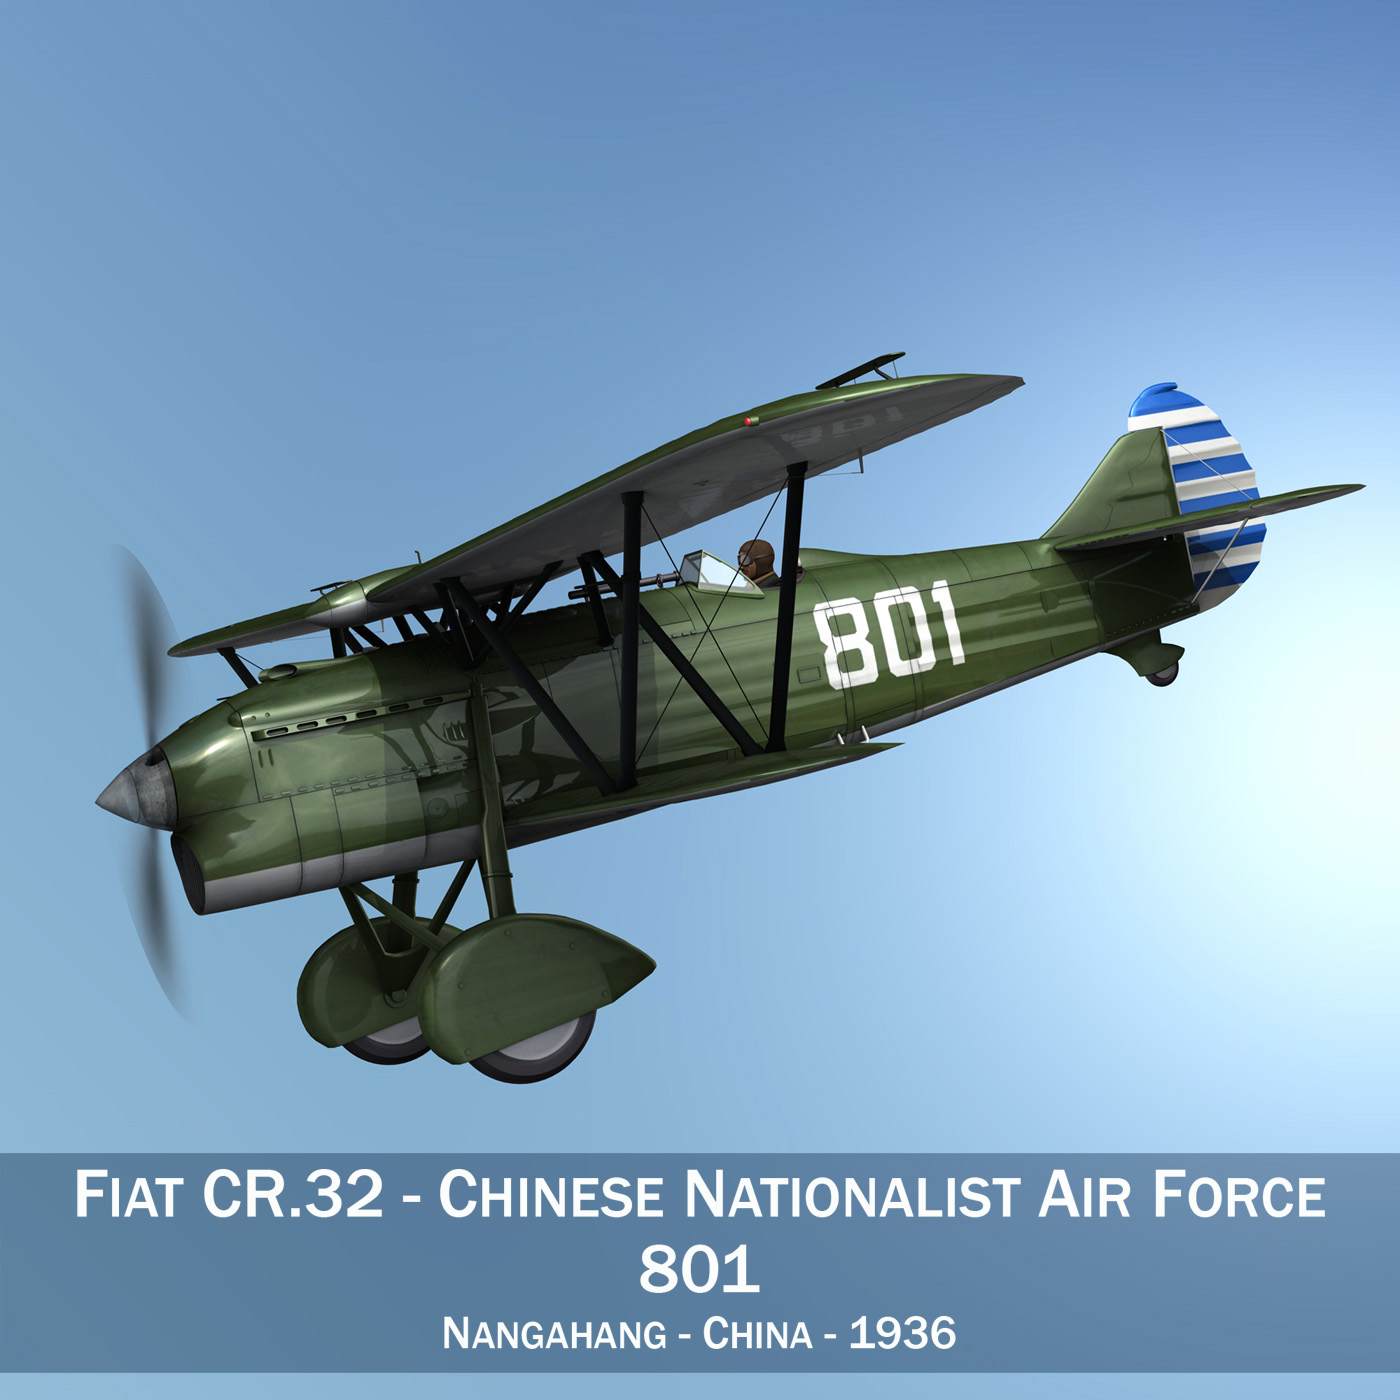 fiat cr.32 – chinese nationalist air force 3d model fbx c4d lwo obj 272624